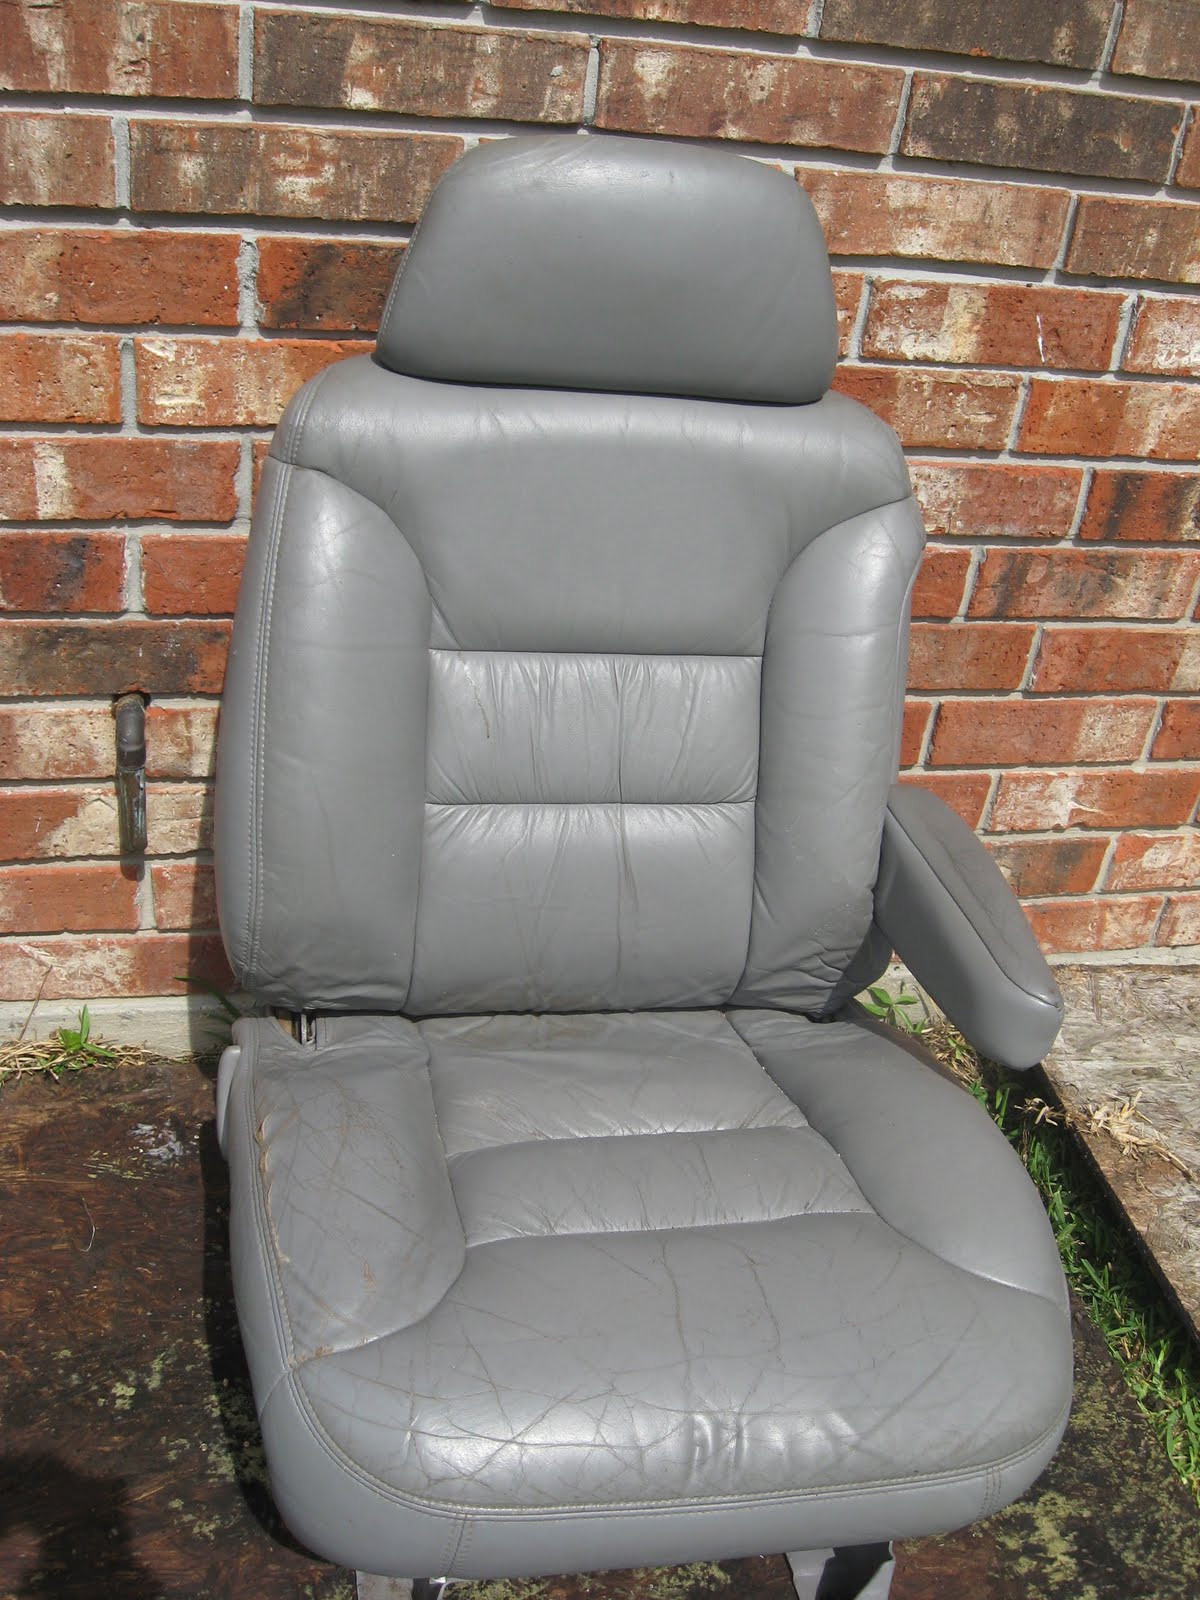 hot cars tv hott sale 98 chevy tahoe grey leather seats 175 new orleans. Black Bedroom Furniture Sets. Home Design Ideas